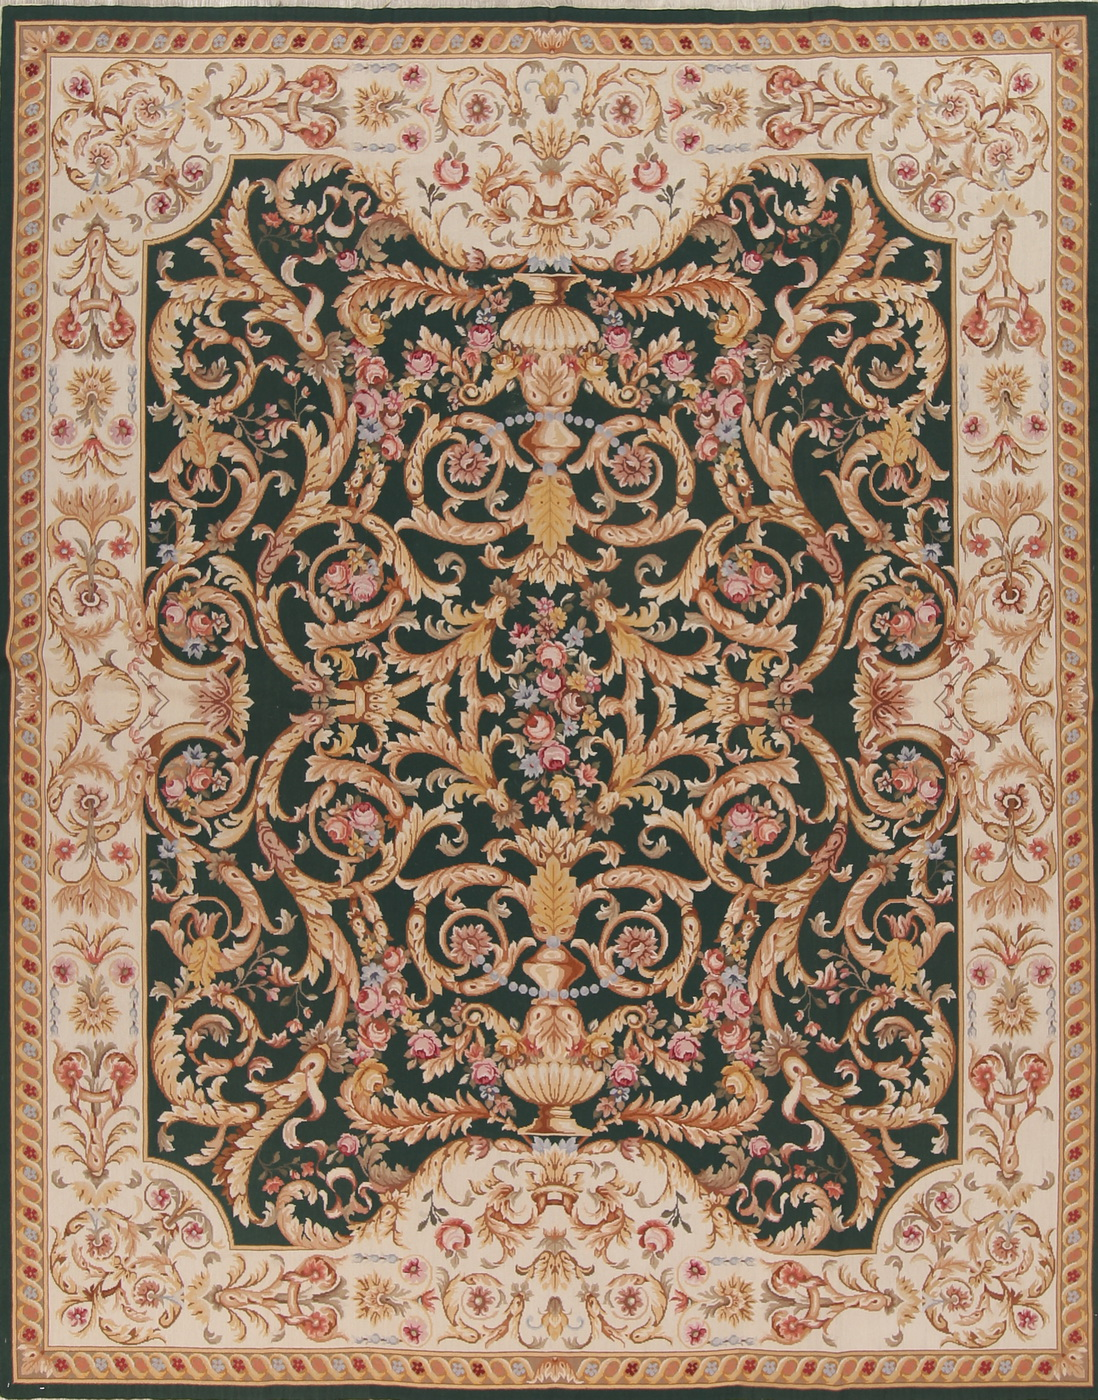 Details About Floral Green 8x10 Savonnerie Needlepoint Chinese Oriental Hand Woven Wool Rug